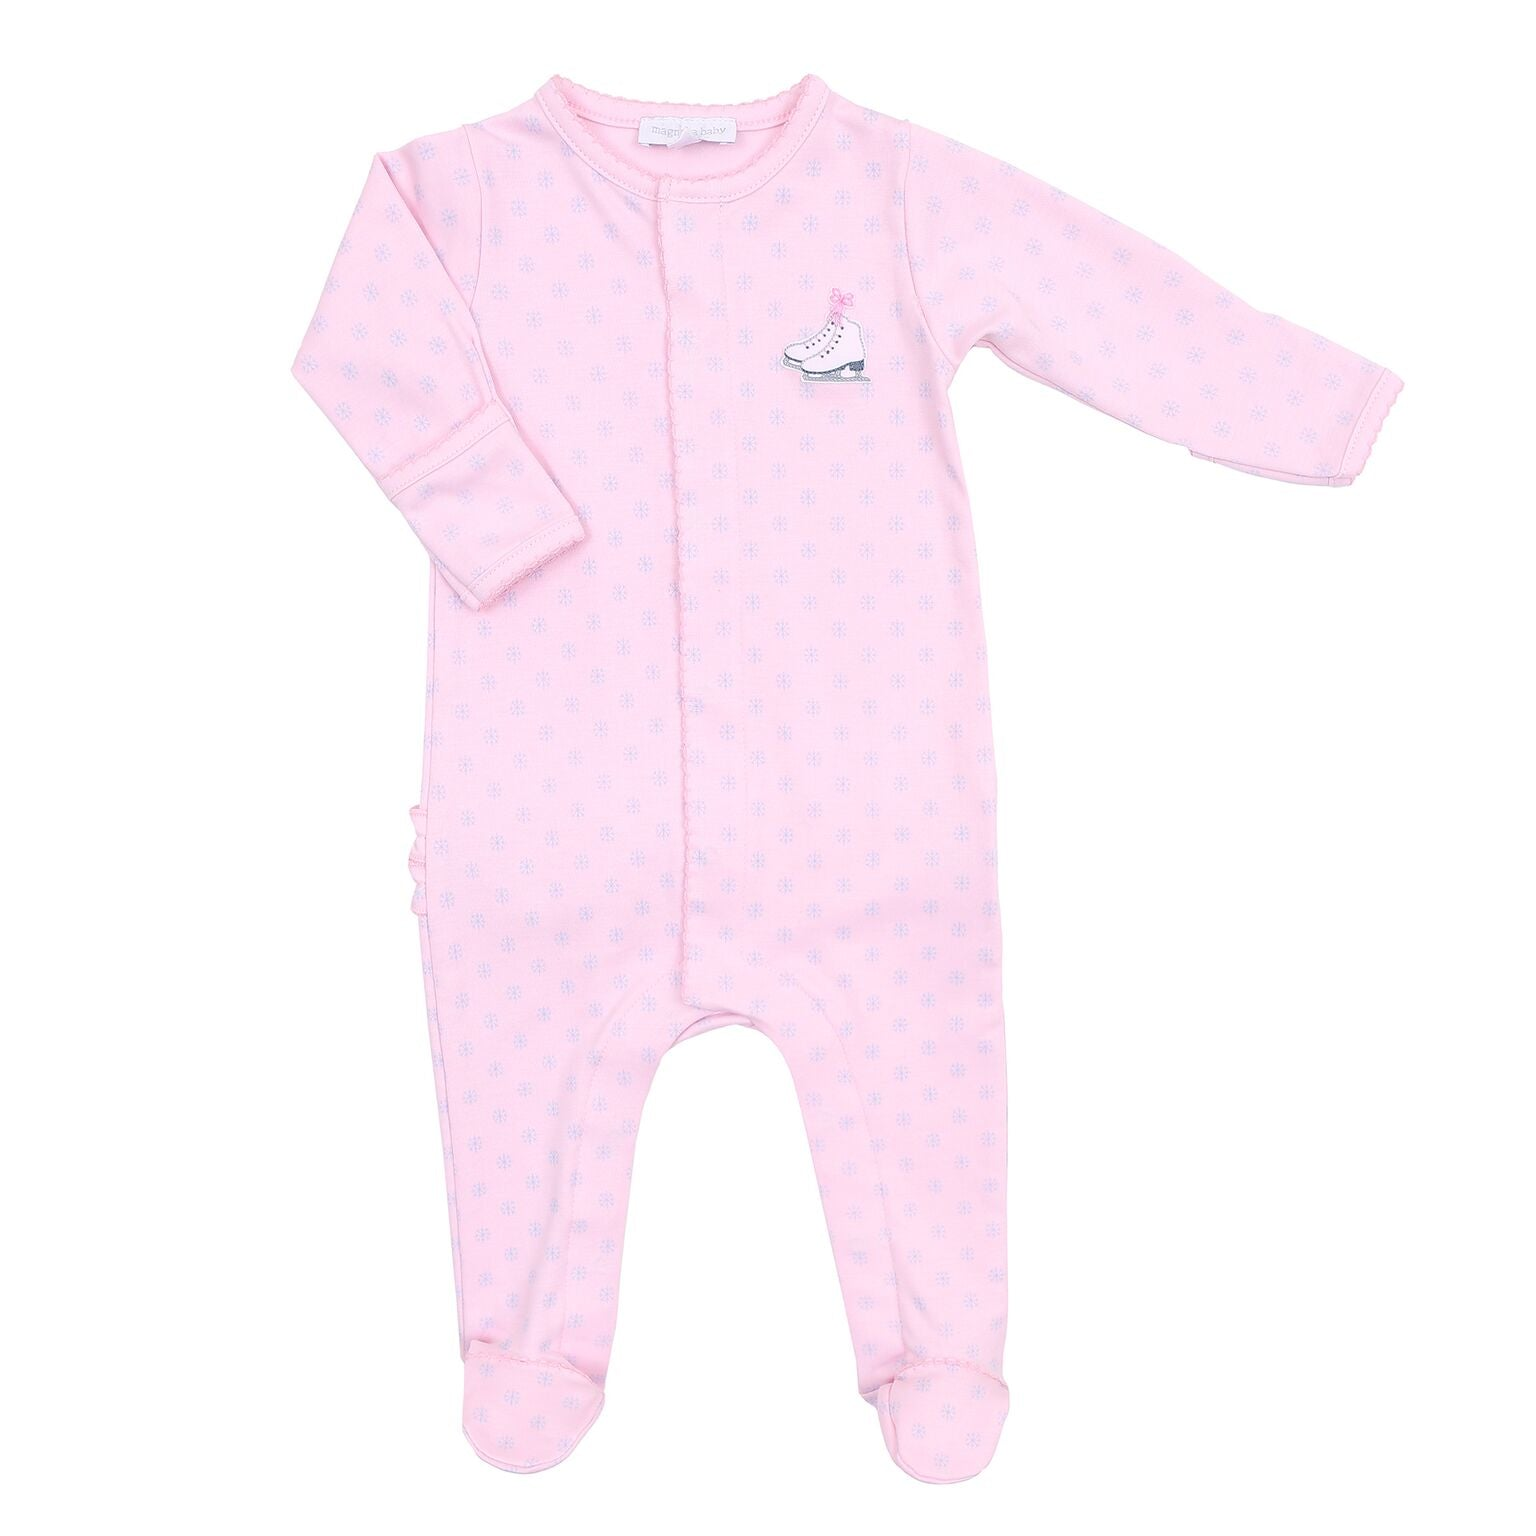 PRINTED PINK RUFFLE WINTER WONDERLAND BABYGROW